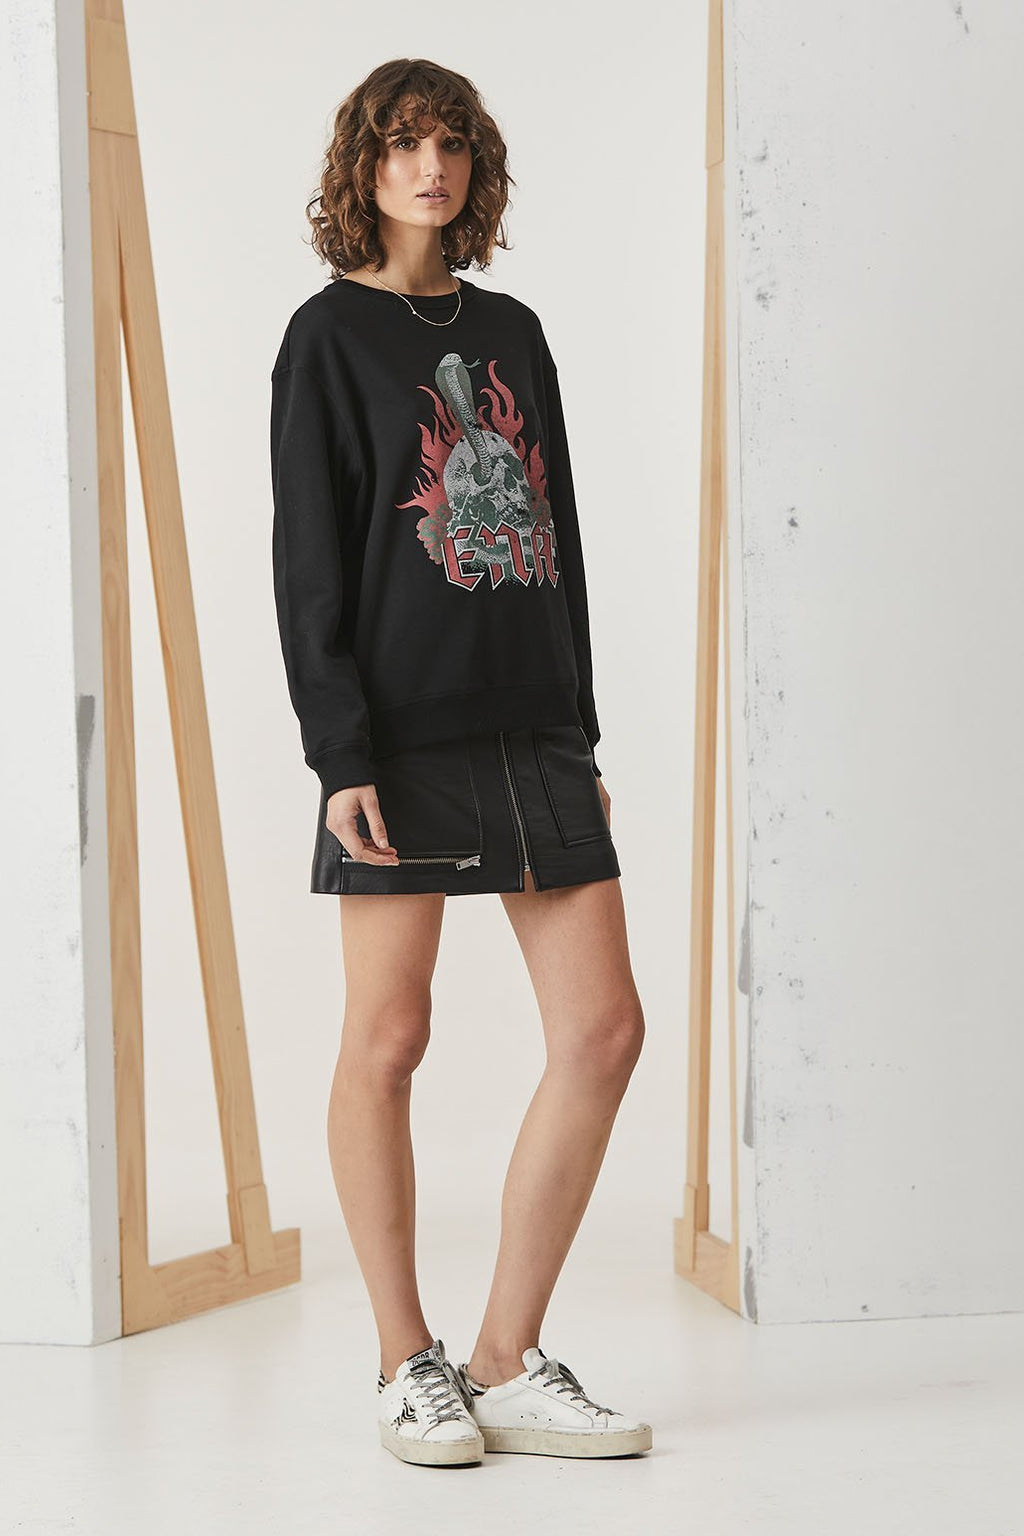 Skulls n Roses Graphic Sweatshirt